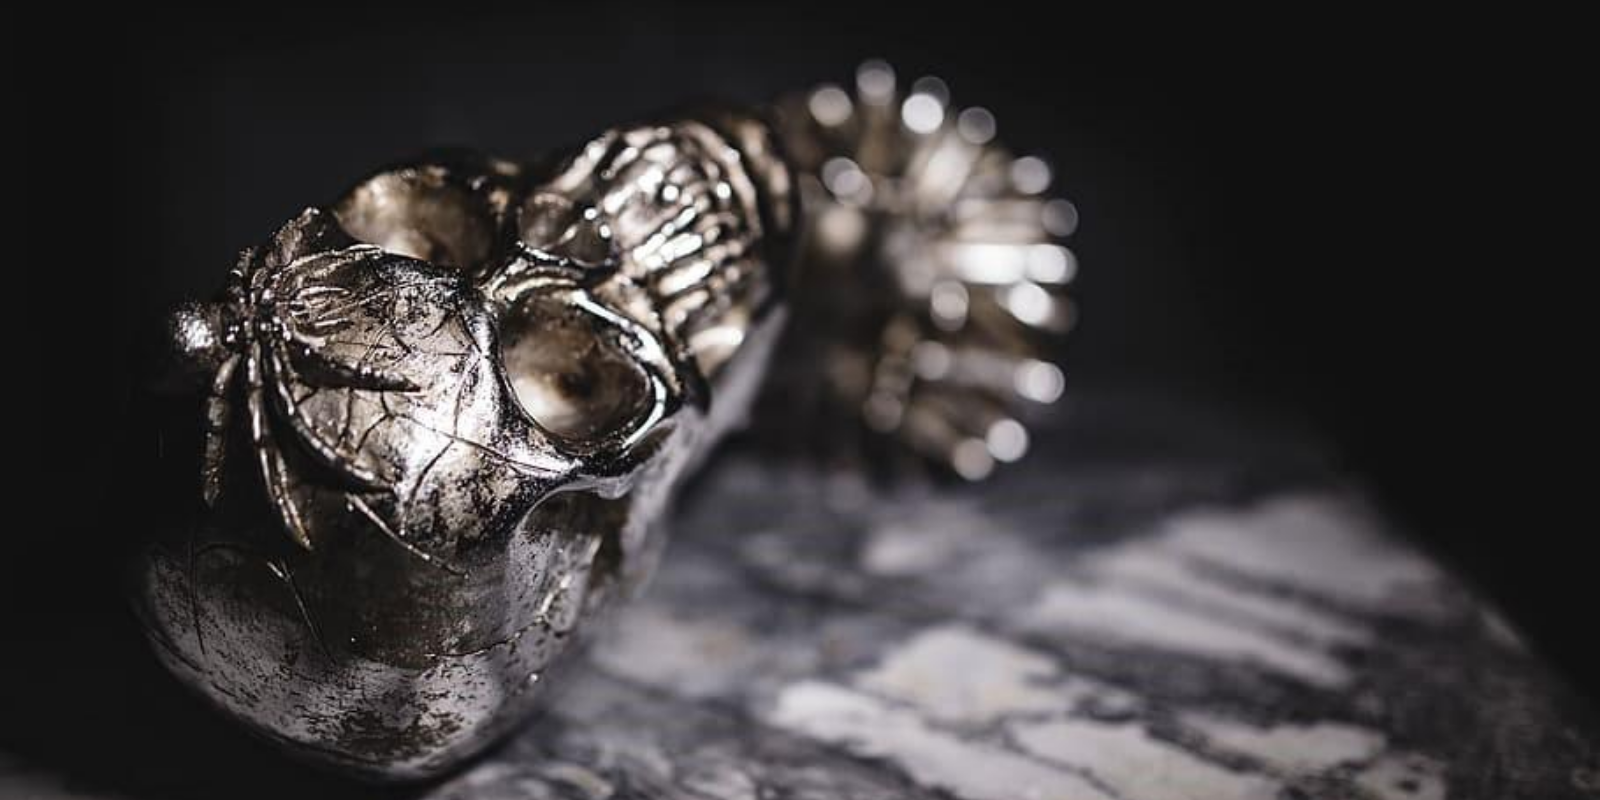 Silver or Steel skull ring